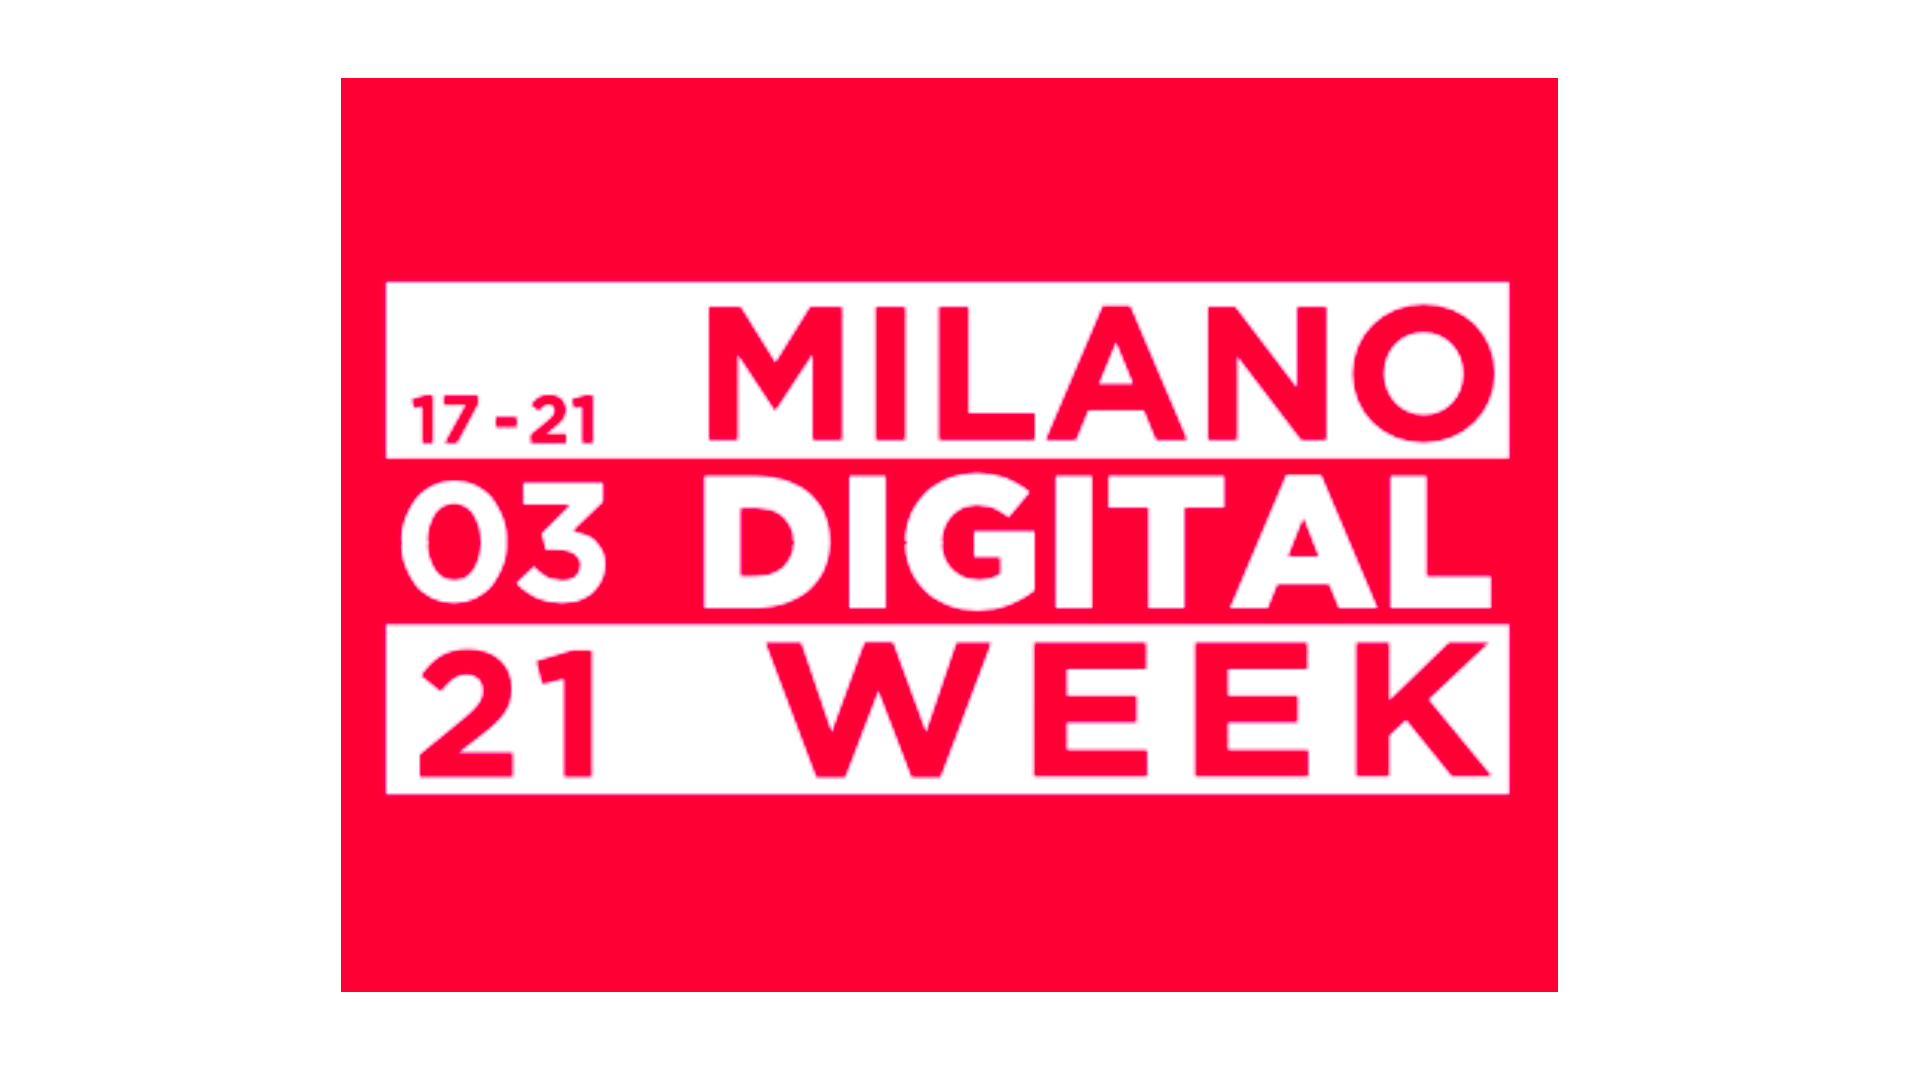 17-21 mars 2021 – Milano Digital Week 2021 – Milan (Italie)